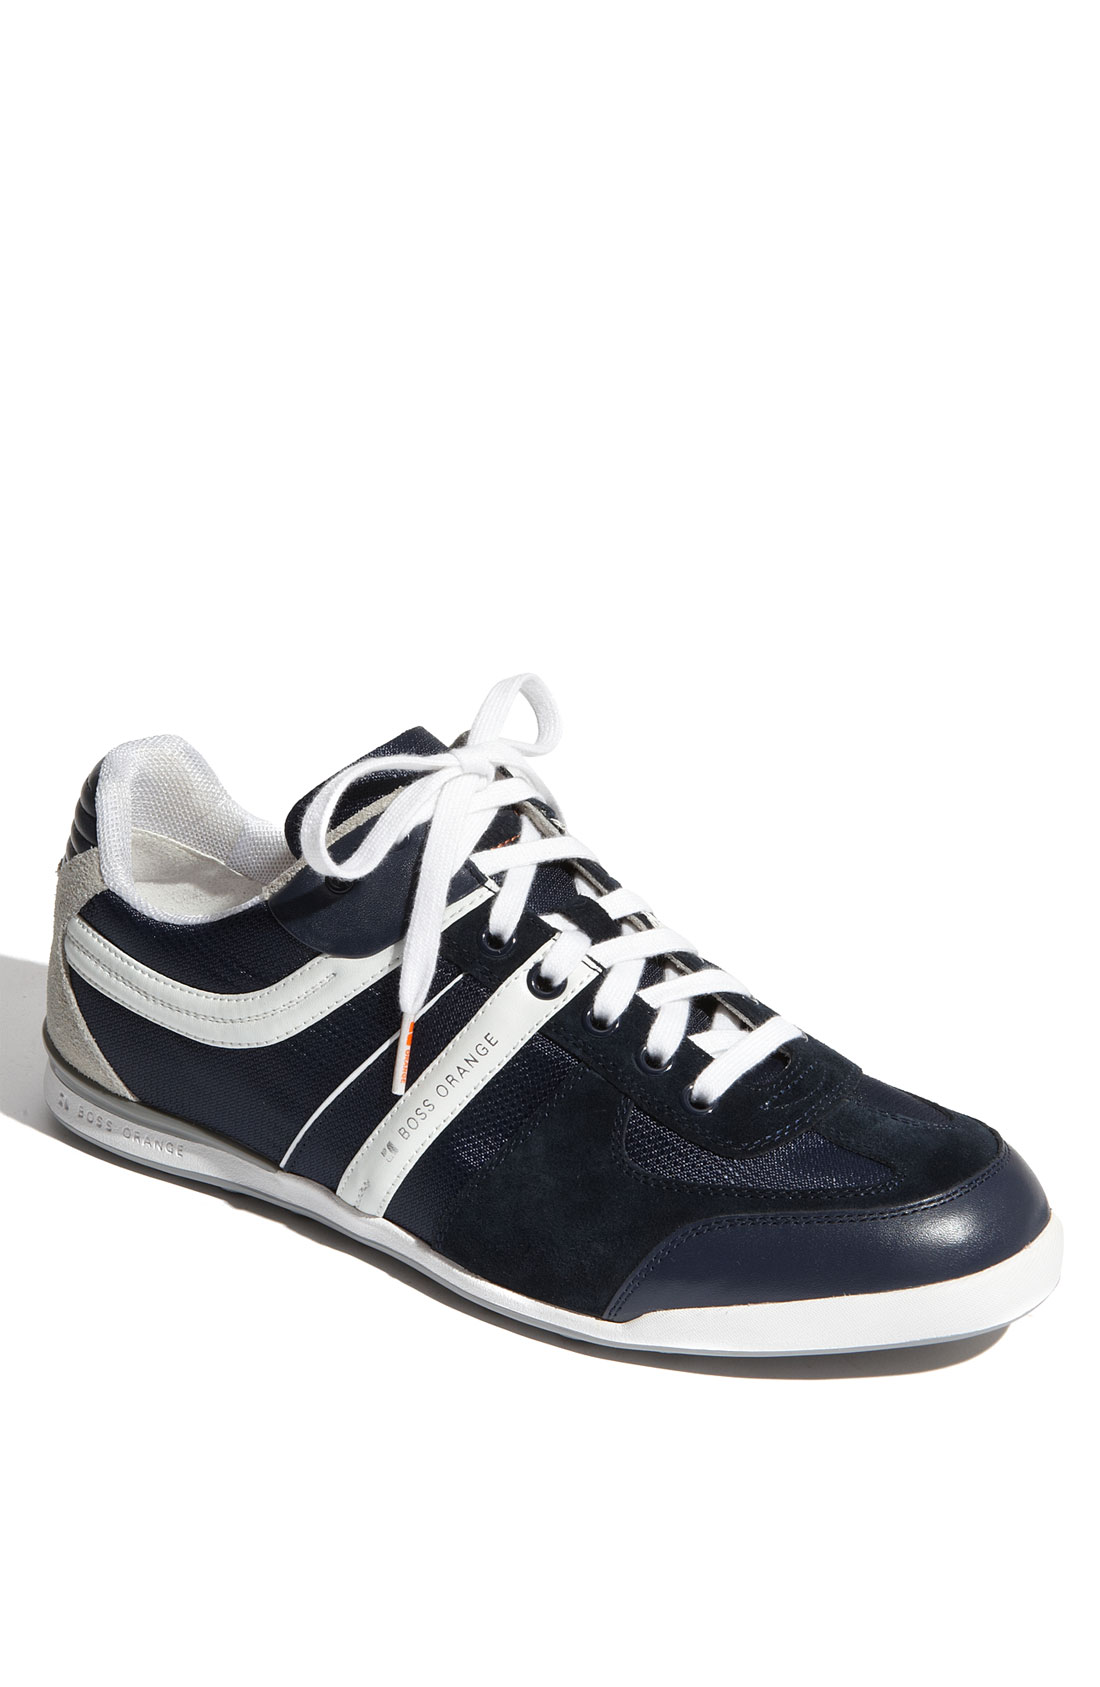 Hugo Boss Sneakers Hugo Boss Boss Orange Kempton Sneaker In Blue For Men